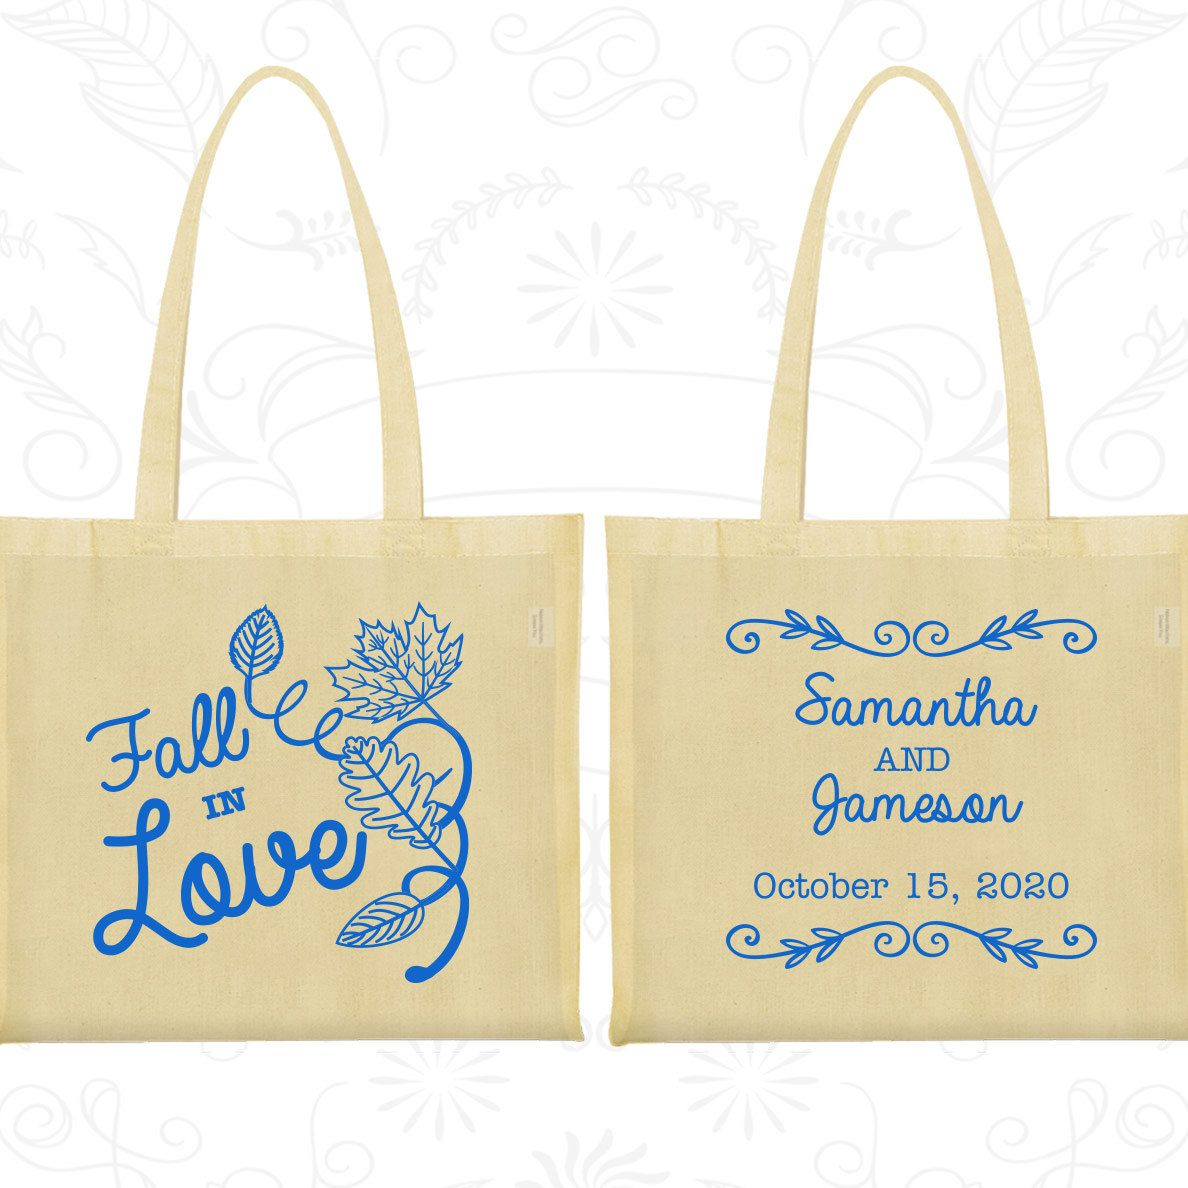 Cotton Tote Bag, Tote Bags, Wedding Tote Bags, Personalized Tote ...